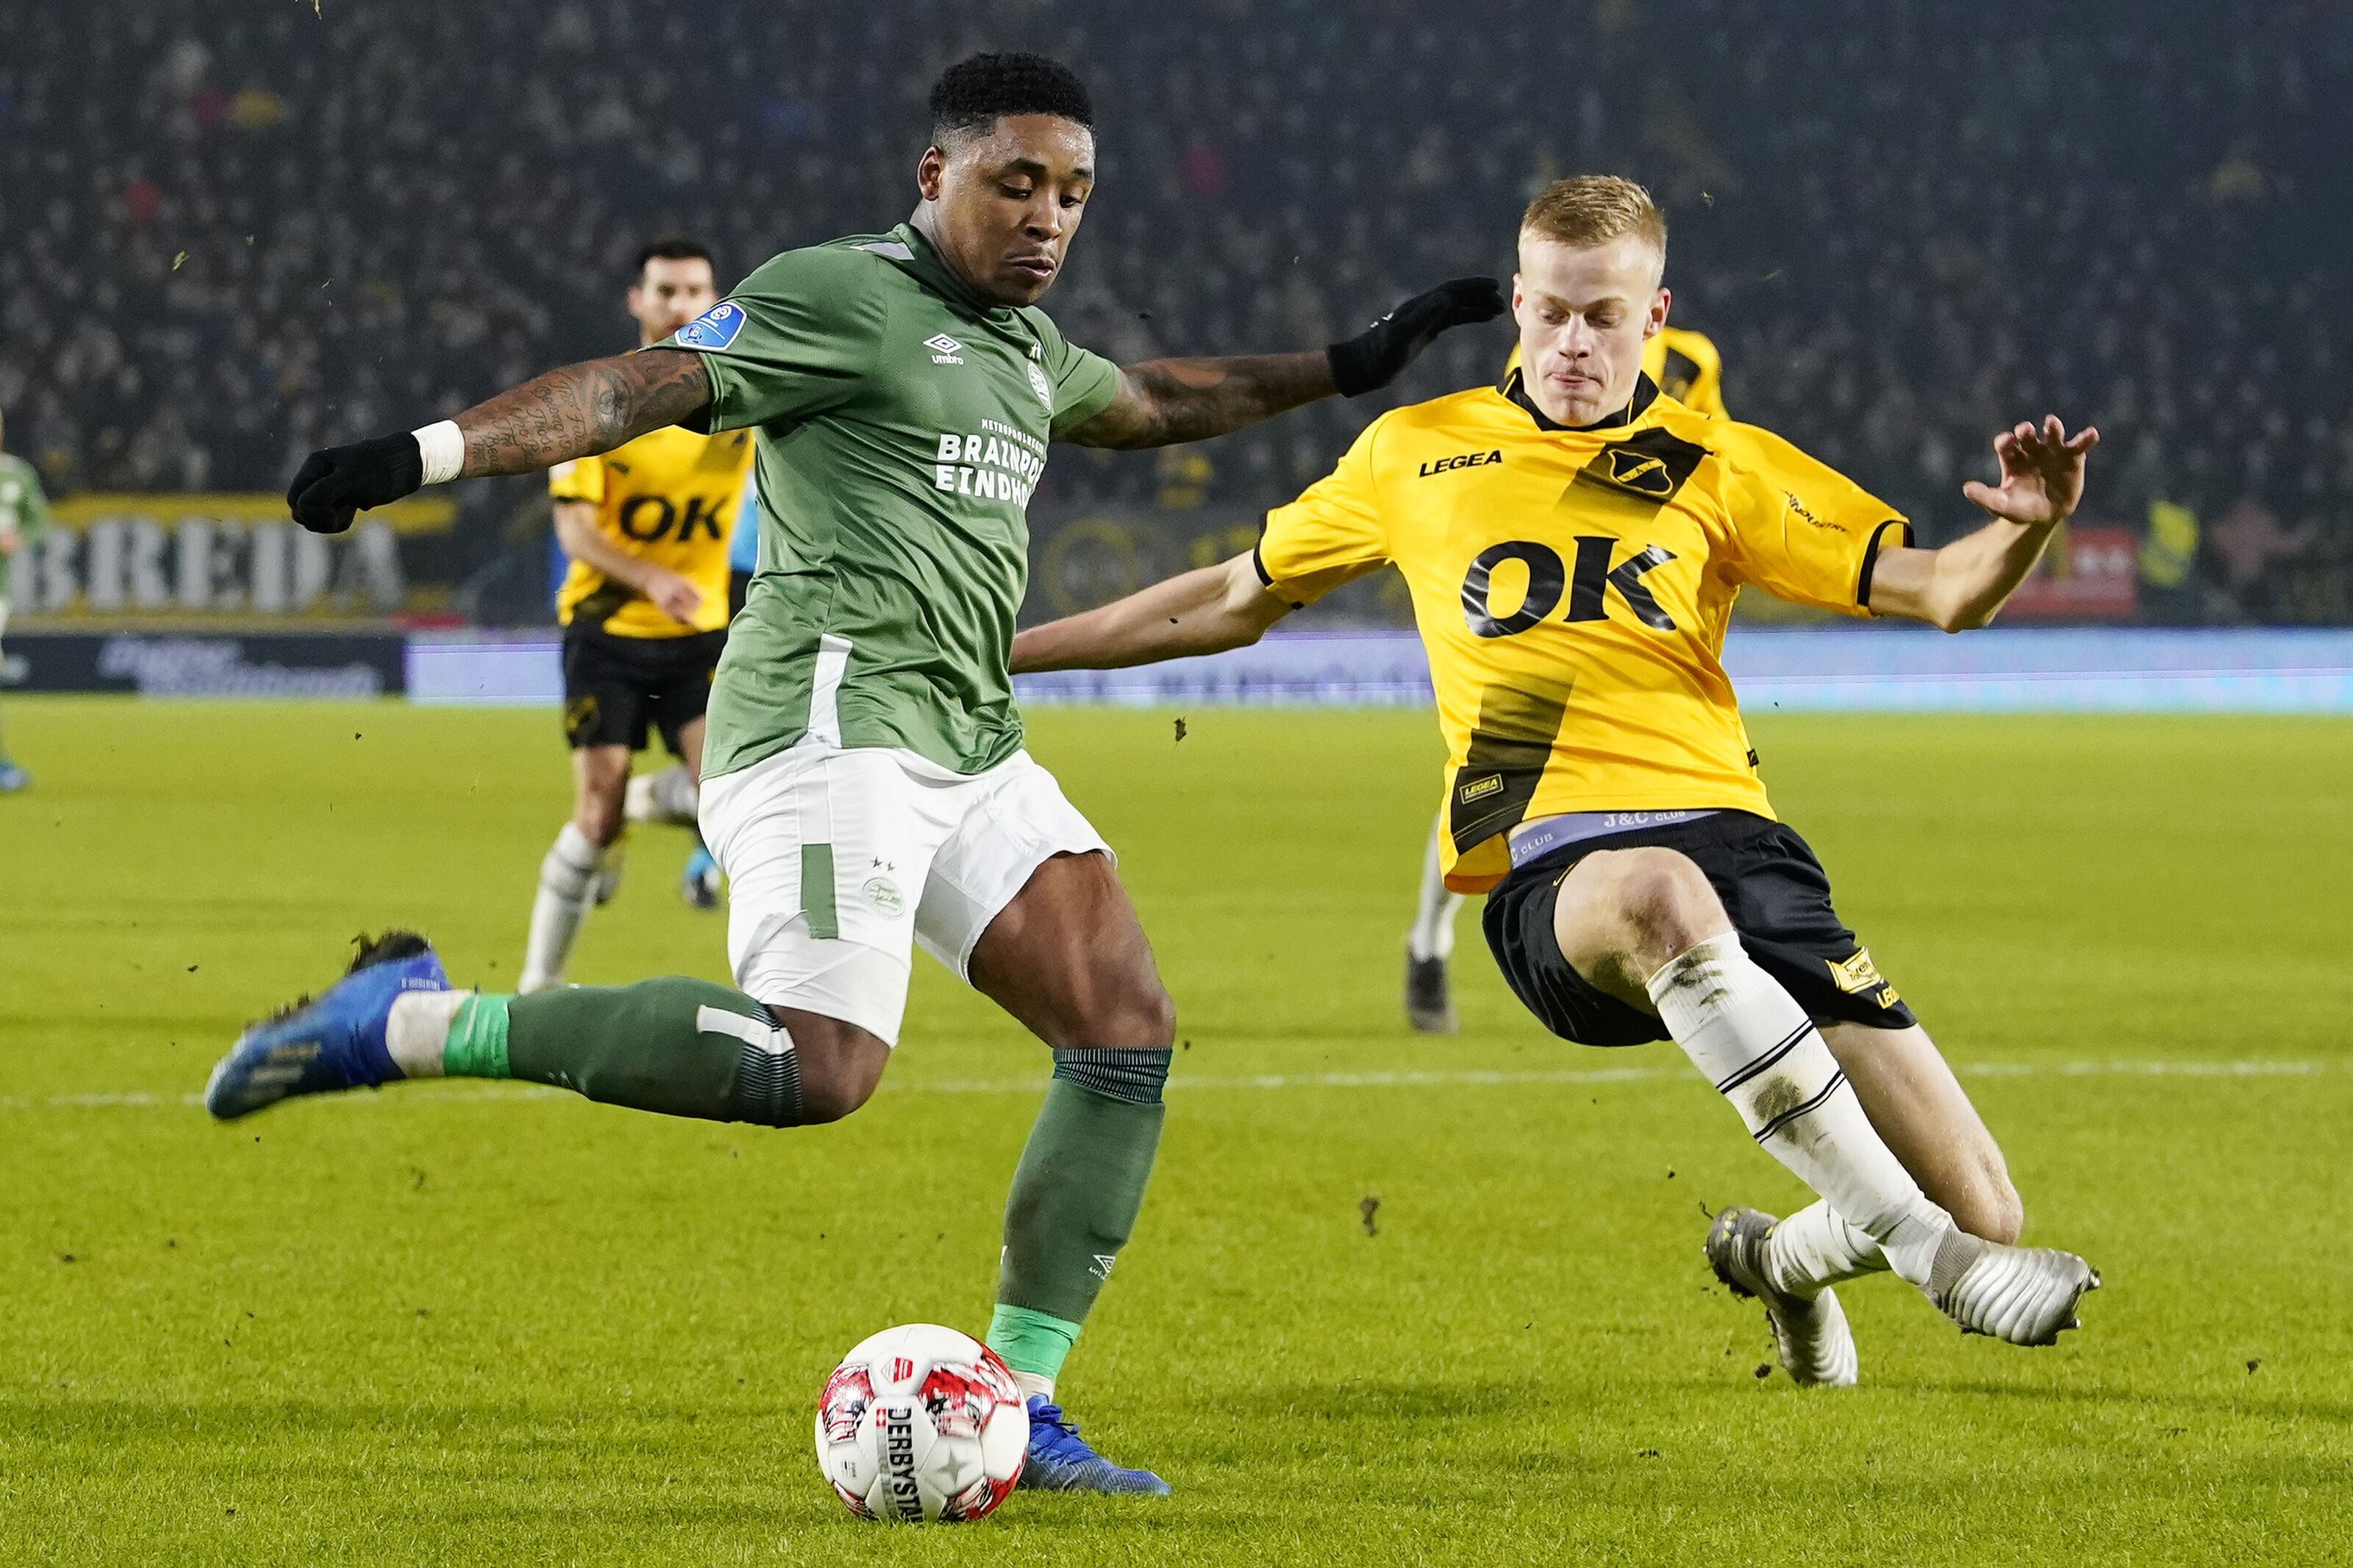 Steven Bergwijn will turn into a shrewd transfer purchase for Tottenham